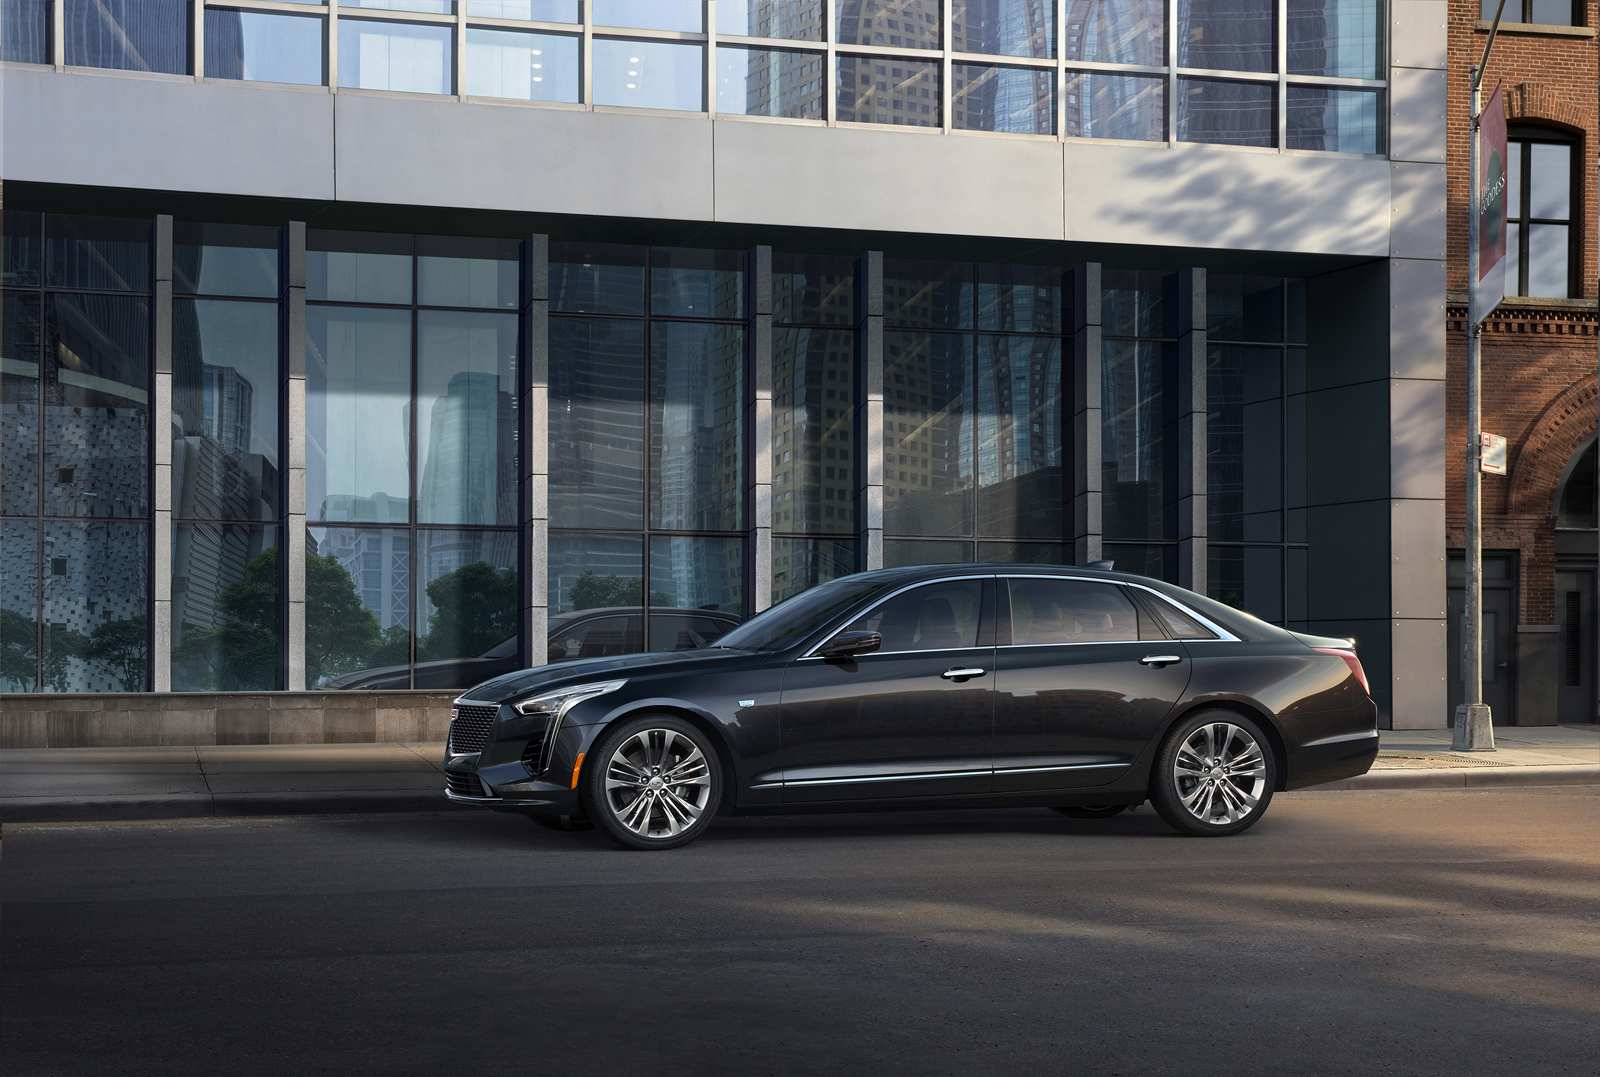 51 Best Review 2019 Cadillac News Spesification with 2019 Cadillac News